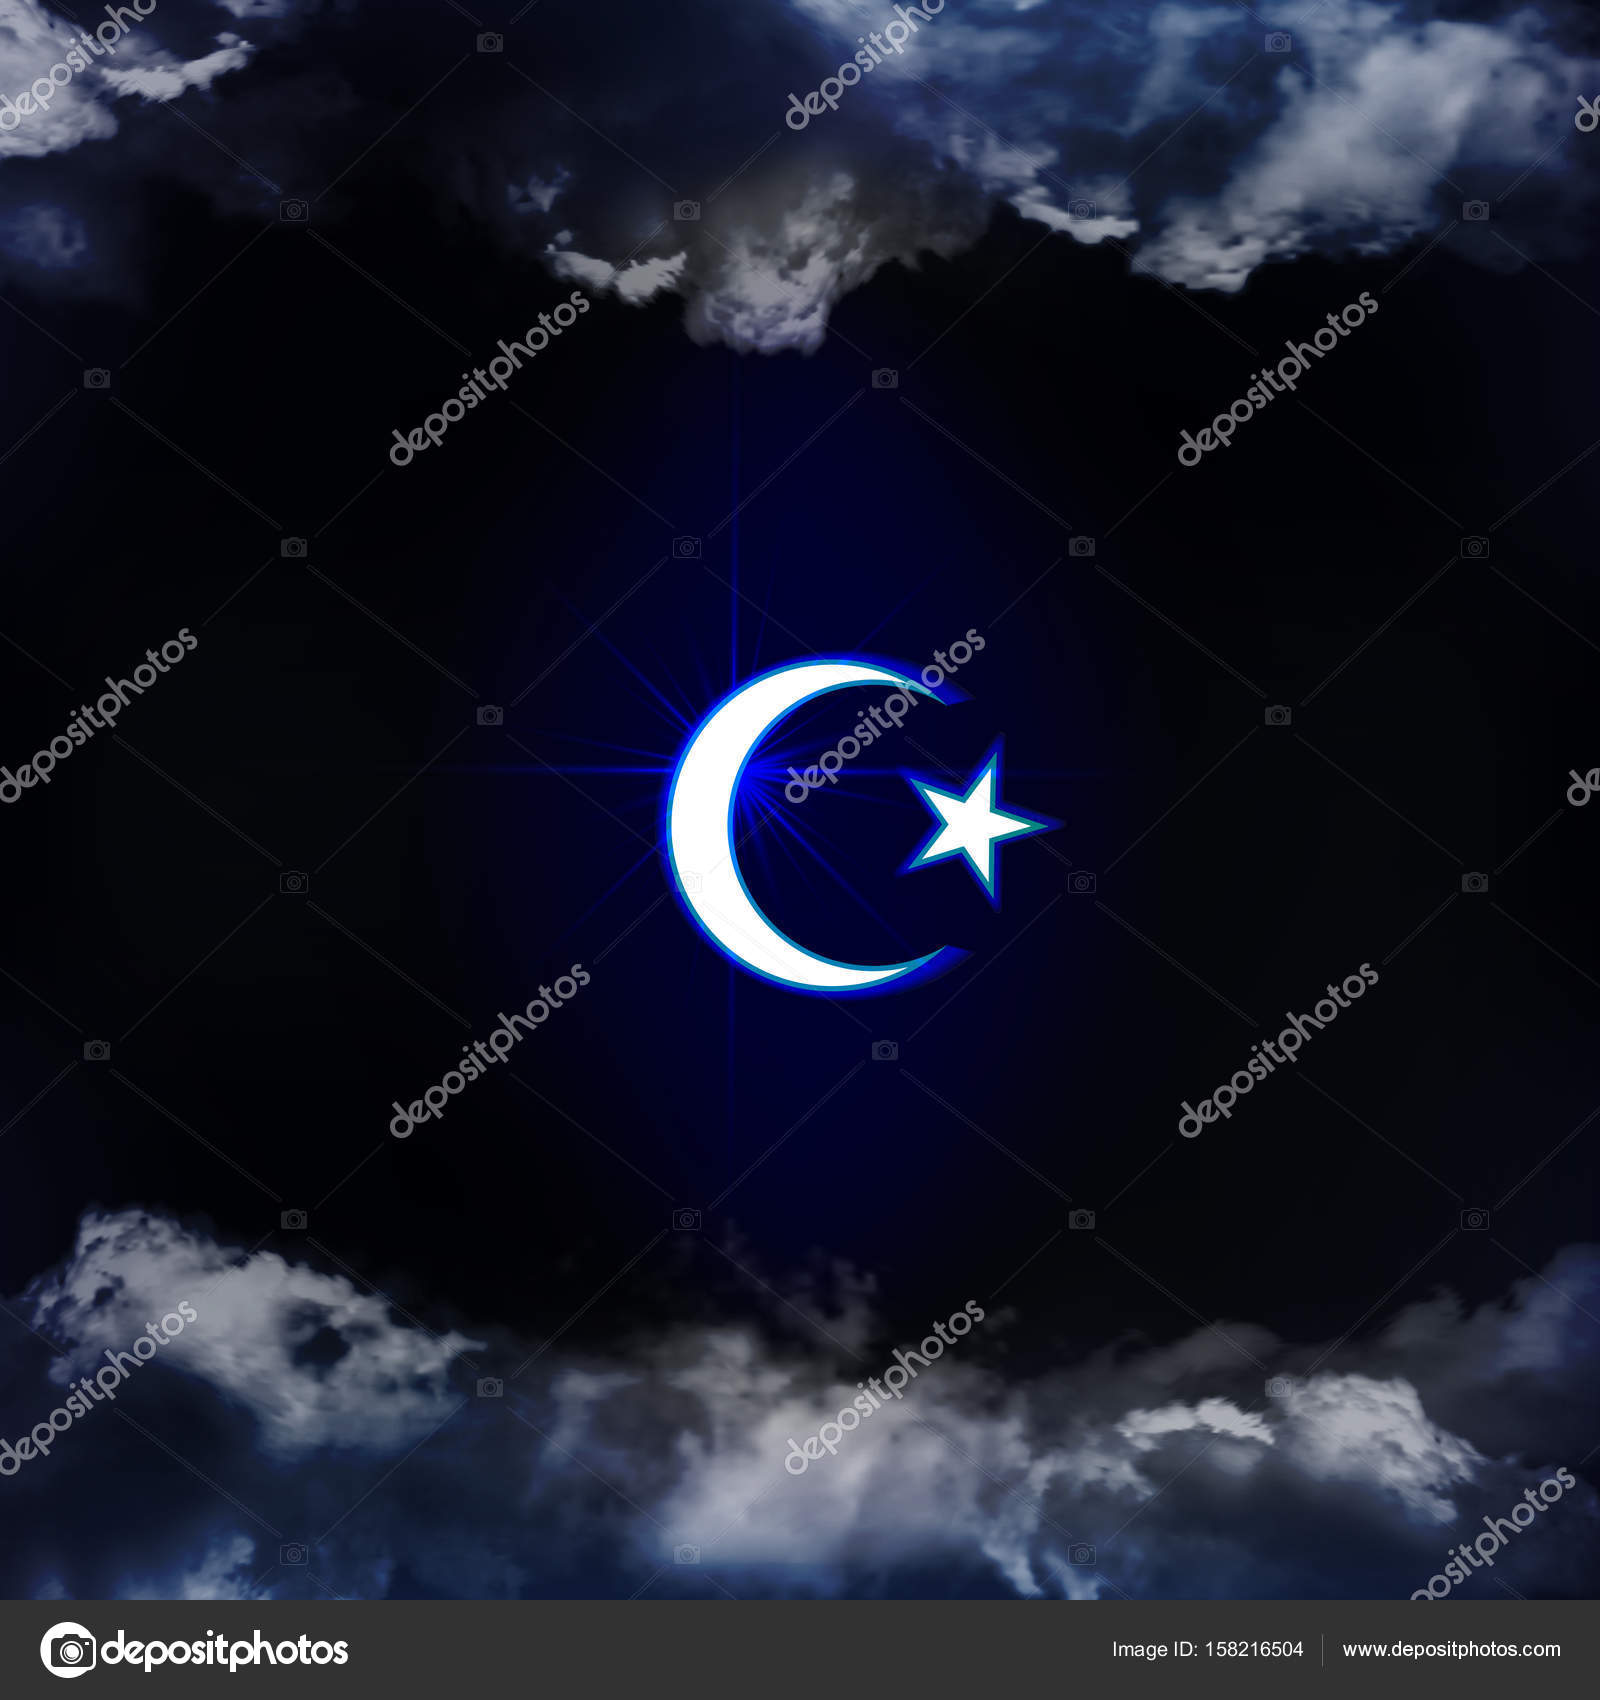 Symbols Of Islam Religion The Symbol Is Seen Through The Clouds